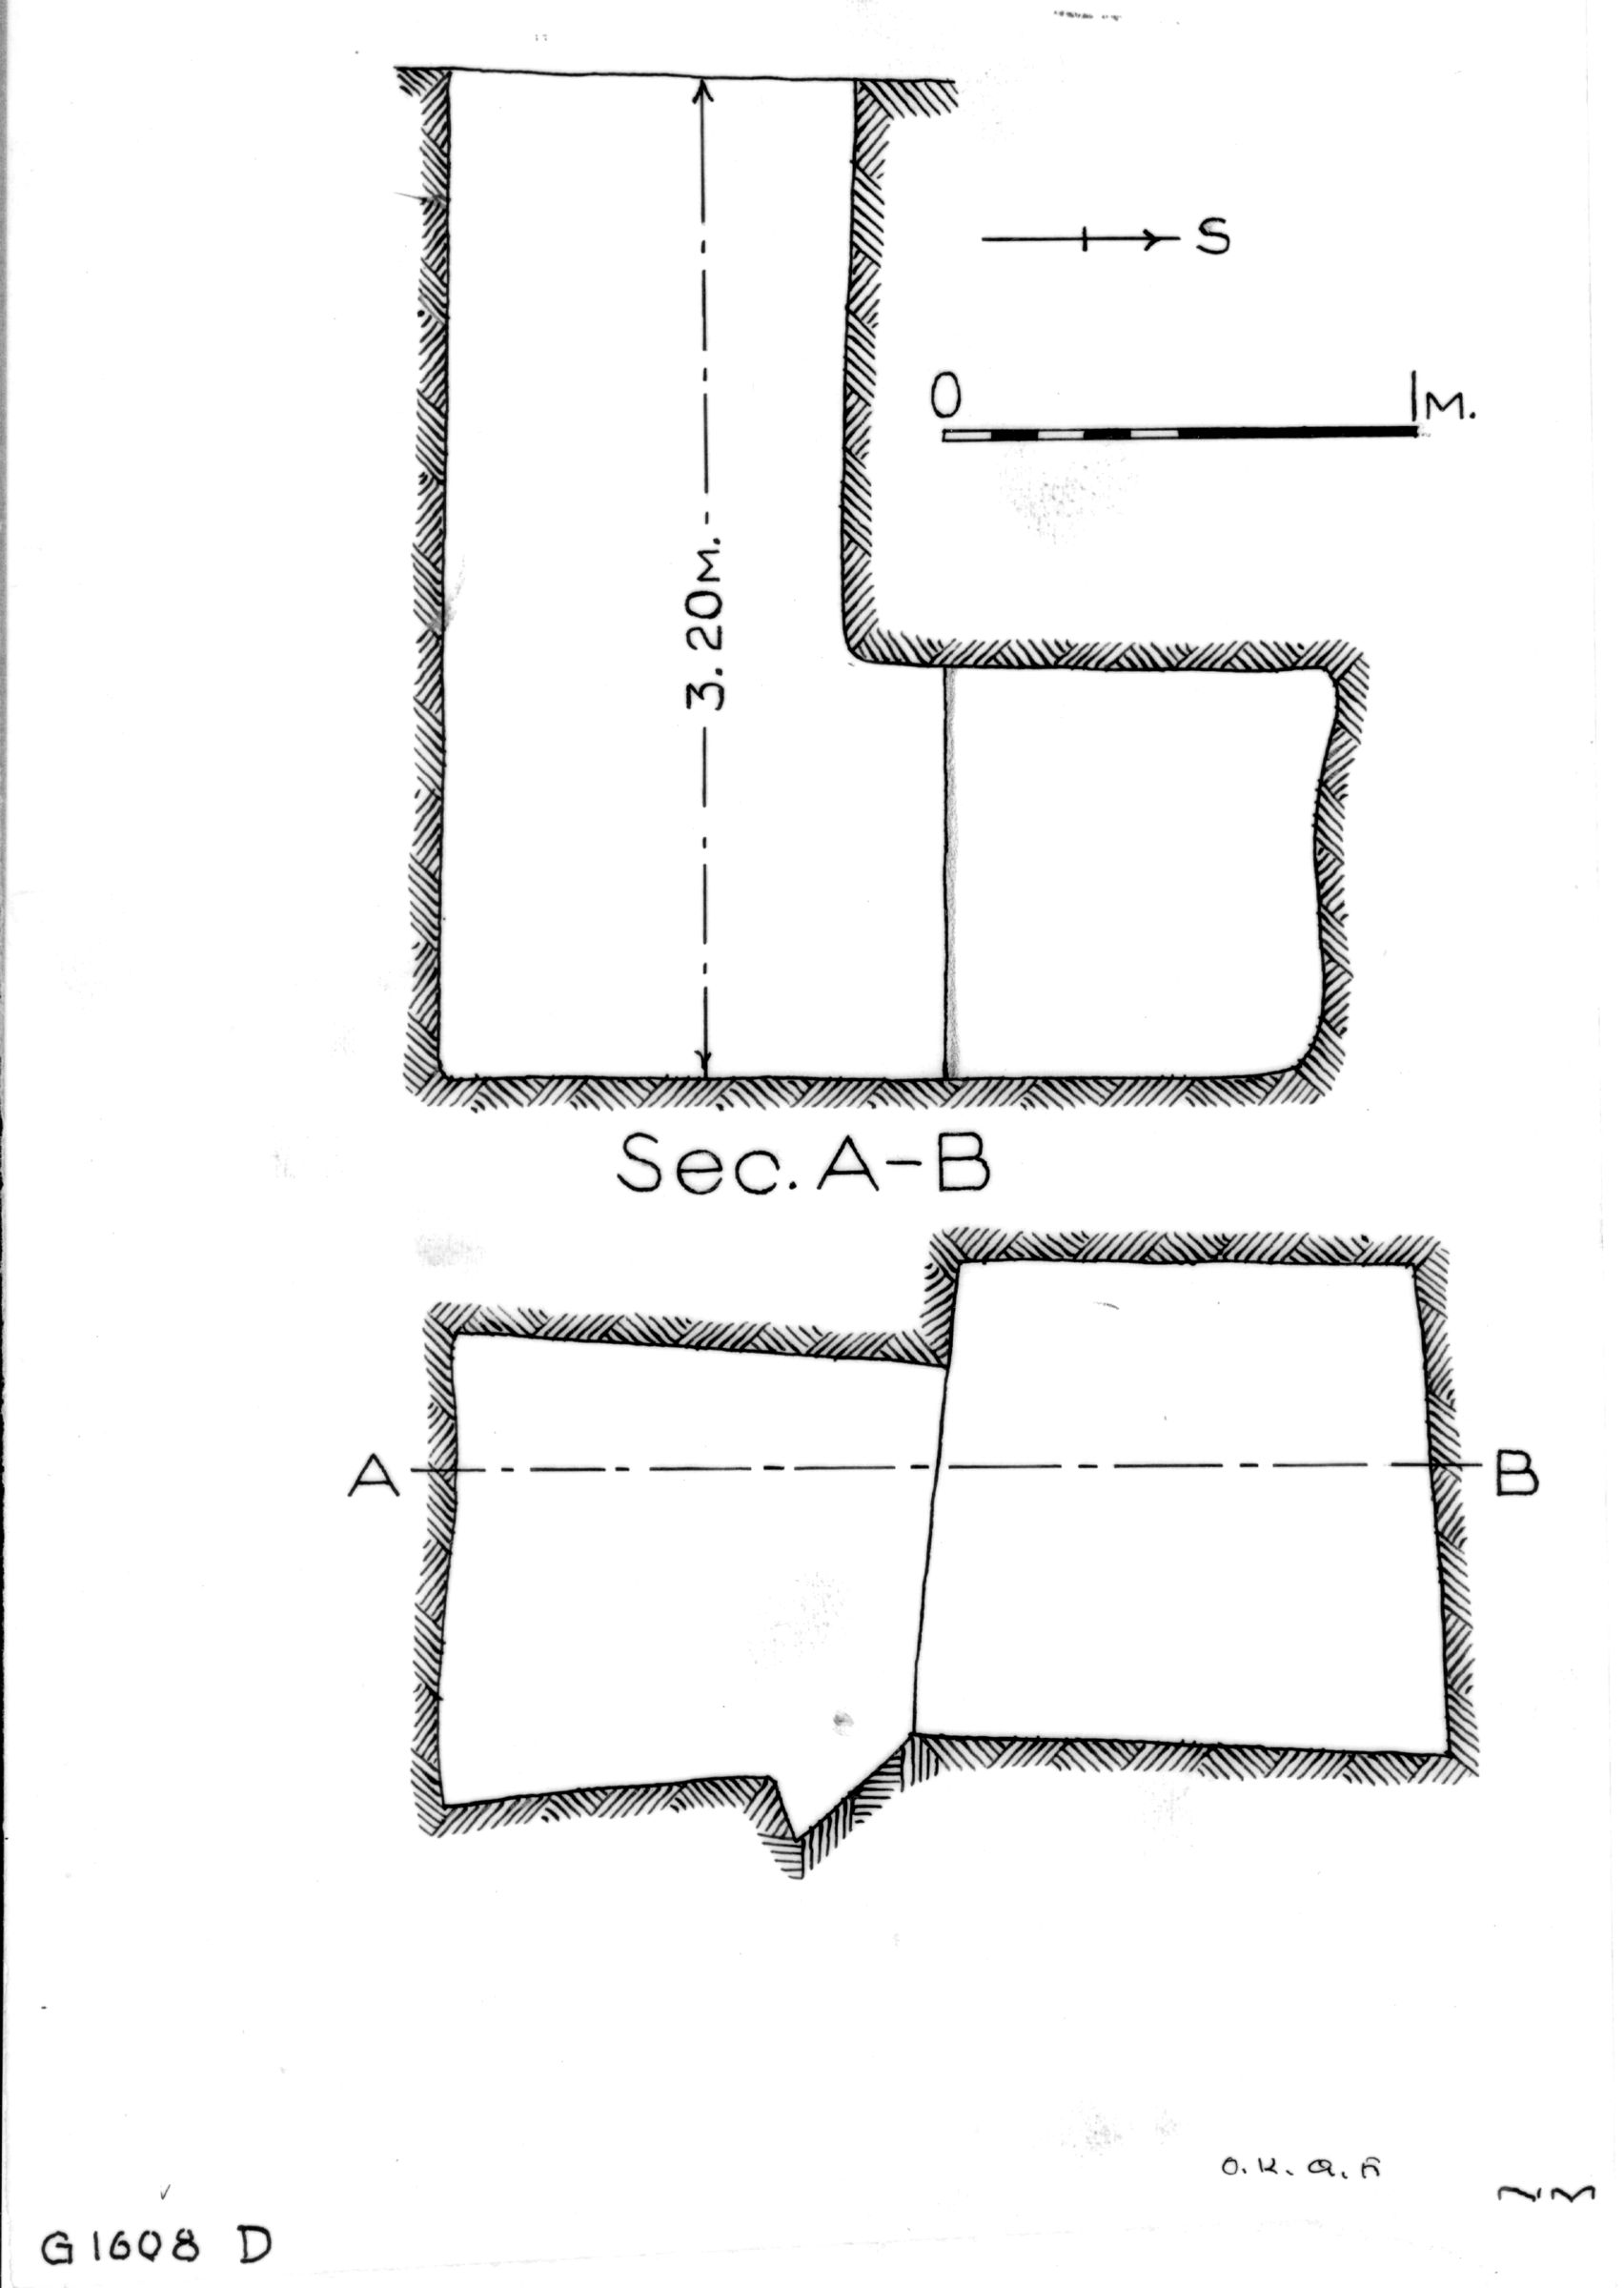 Maps and plans: G 1608, Shaft D